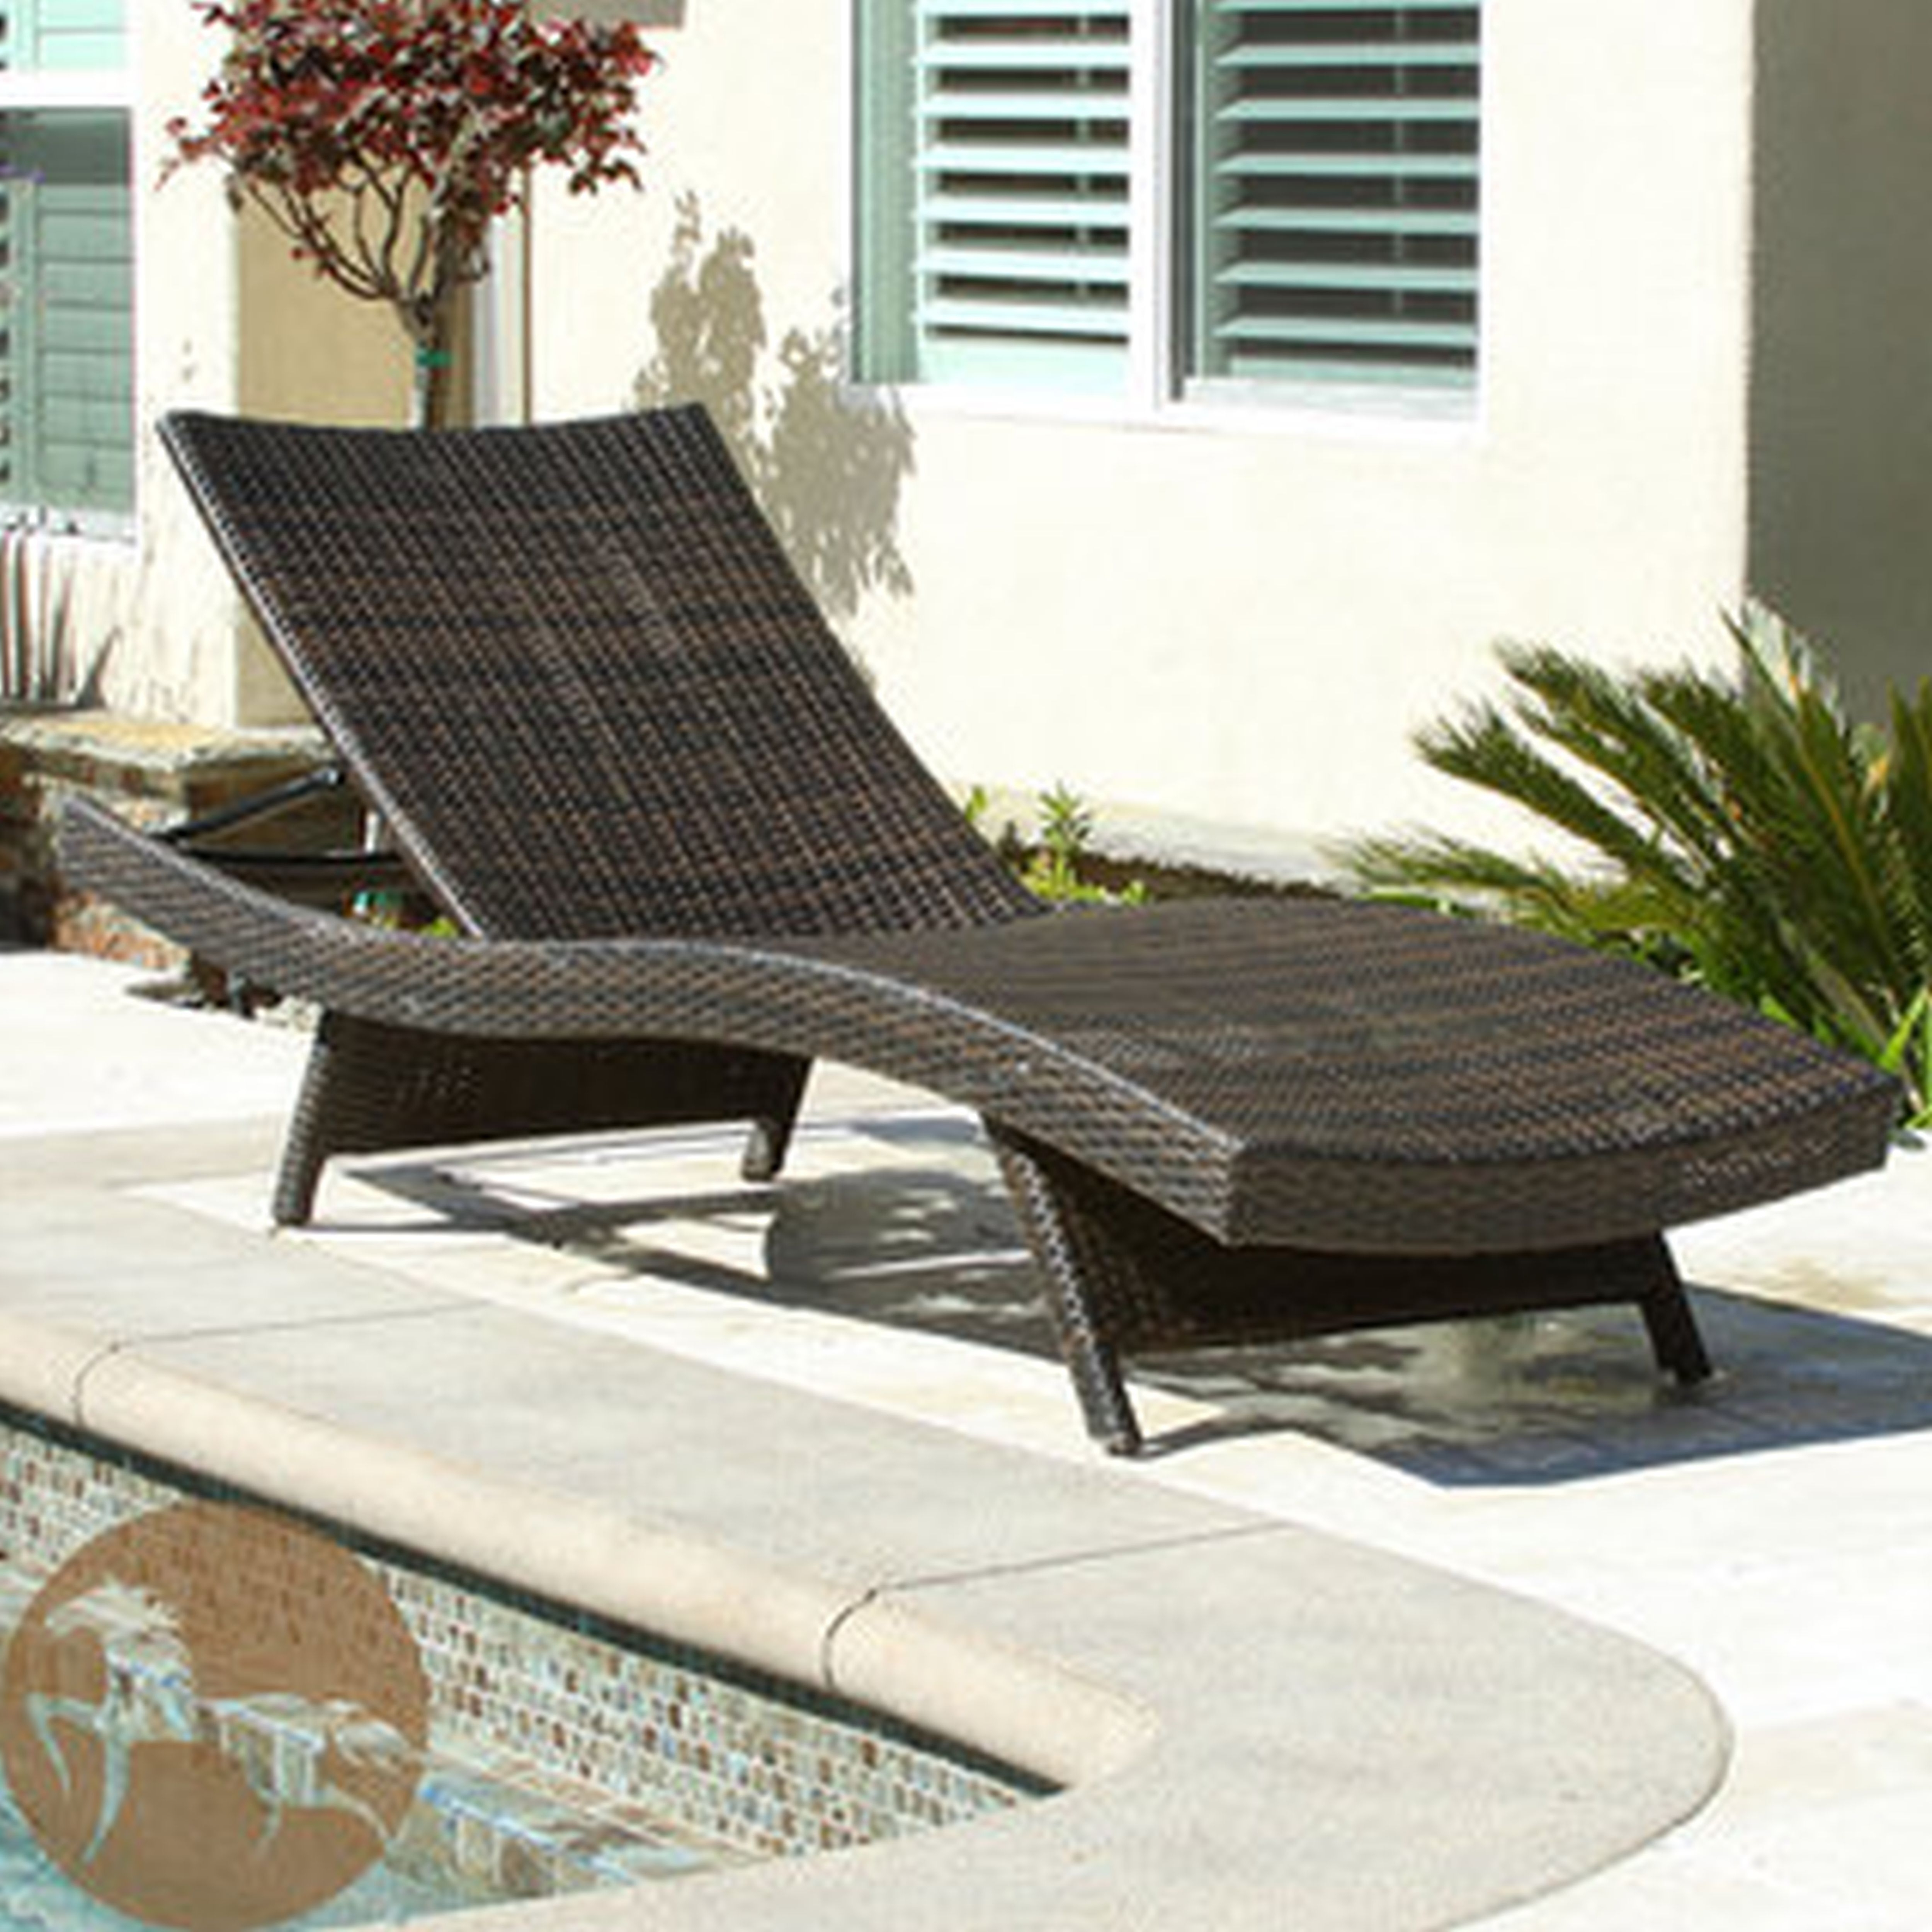 Chaise Lounge Reclining Chairs For Outdoor Intended For Most Recently Released Outdoor Patio Chaise Lounge Chairs • Lounge Chairs Ideas (View 7 of 15)